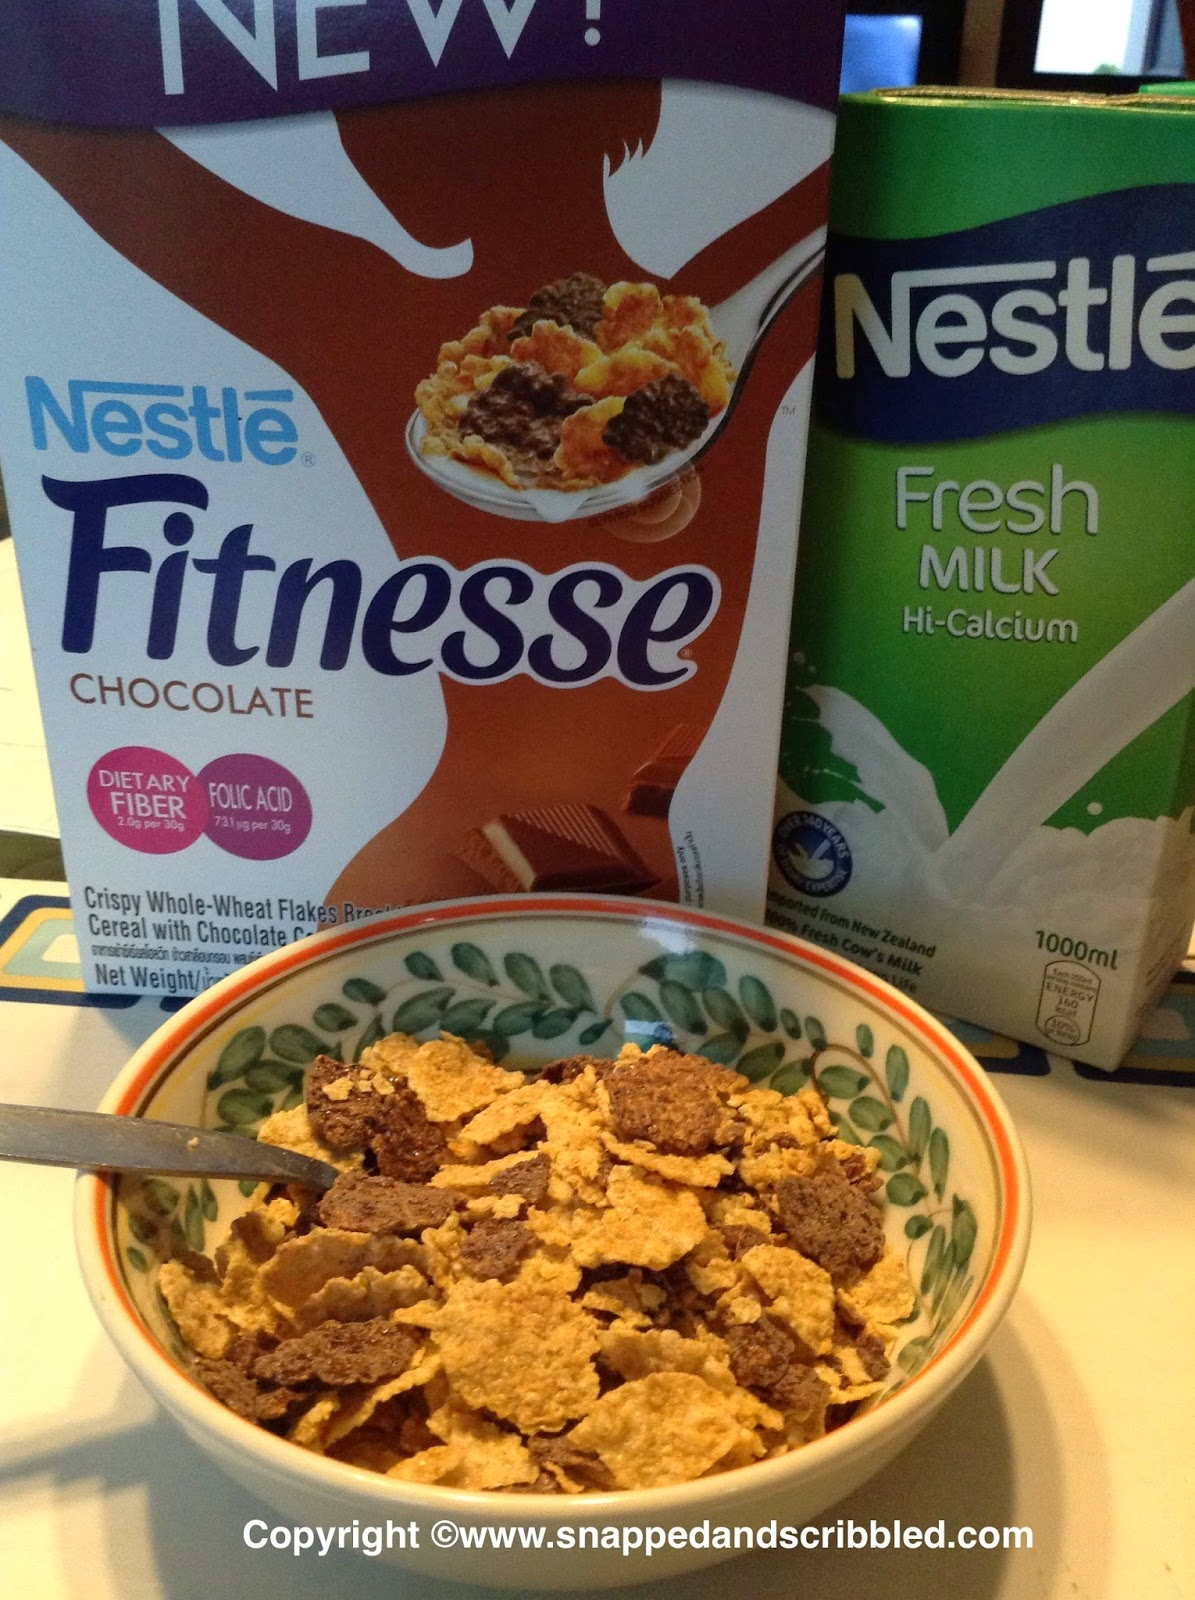 Healthy Breakfast: Nestle Fitnesse Chocolate